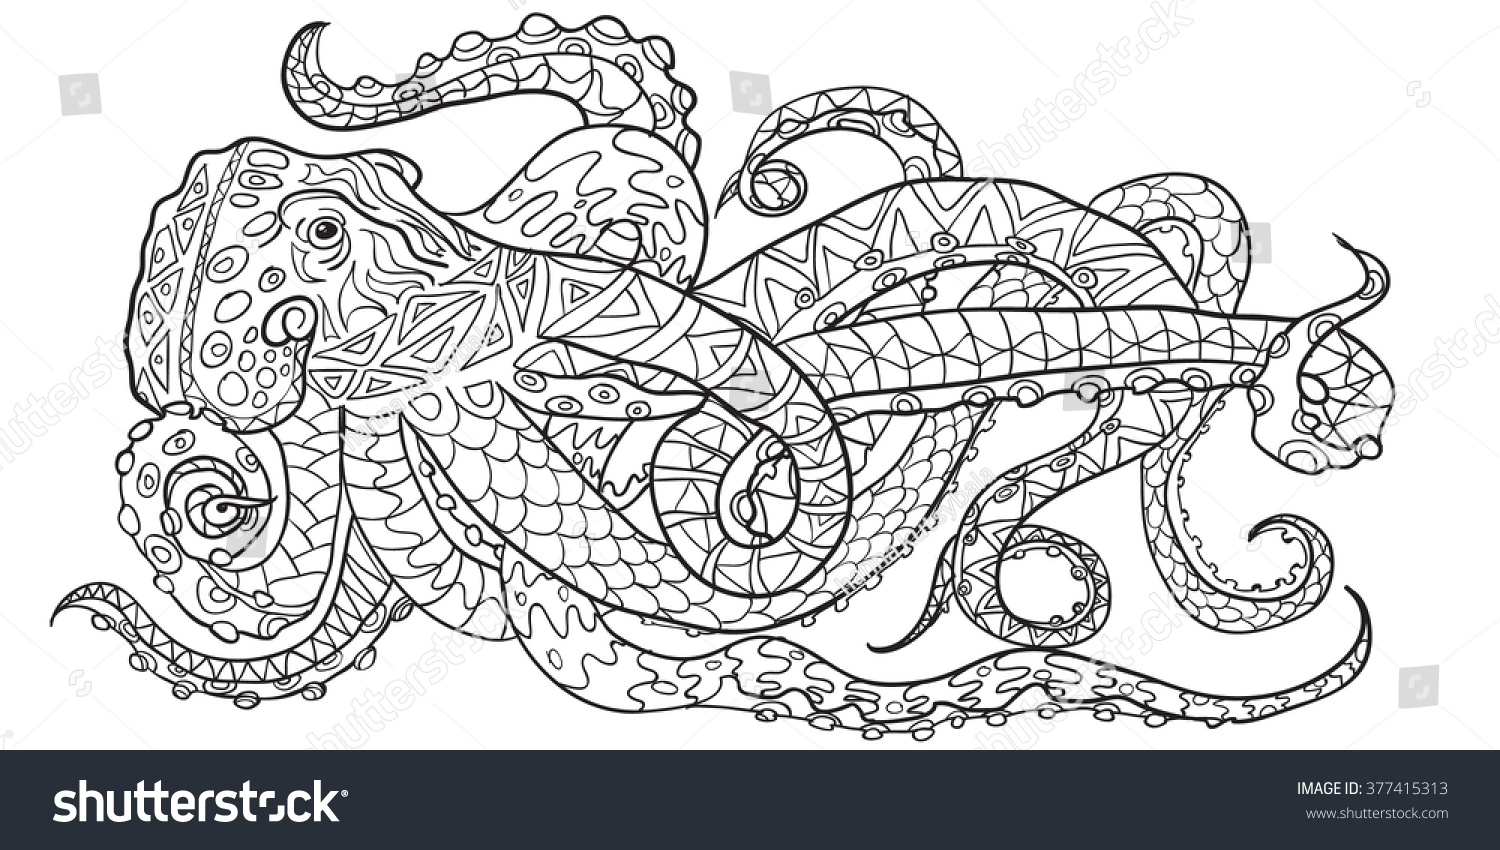 Hand Drawn Coloring Pages With Octopus, Zen Tangle Illustration For Adult  Anti Stress Coloring Books